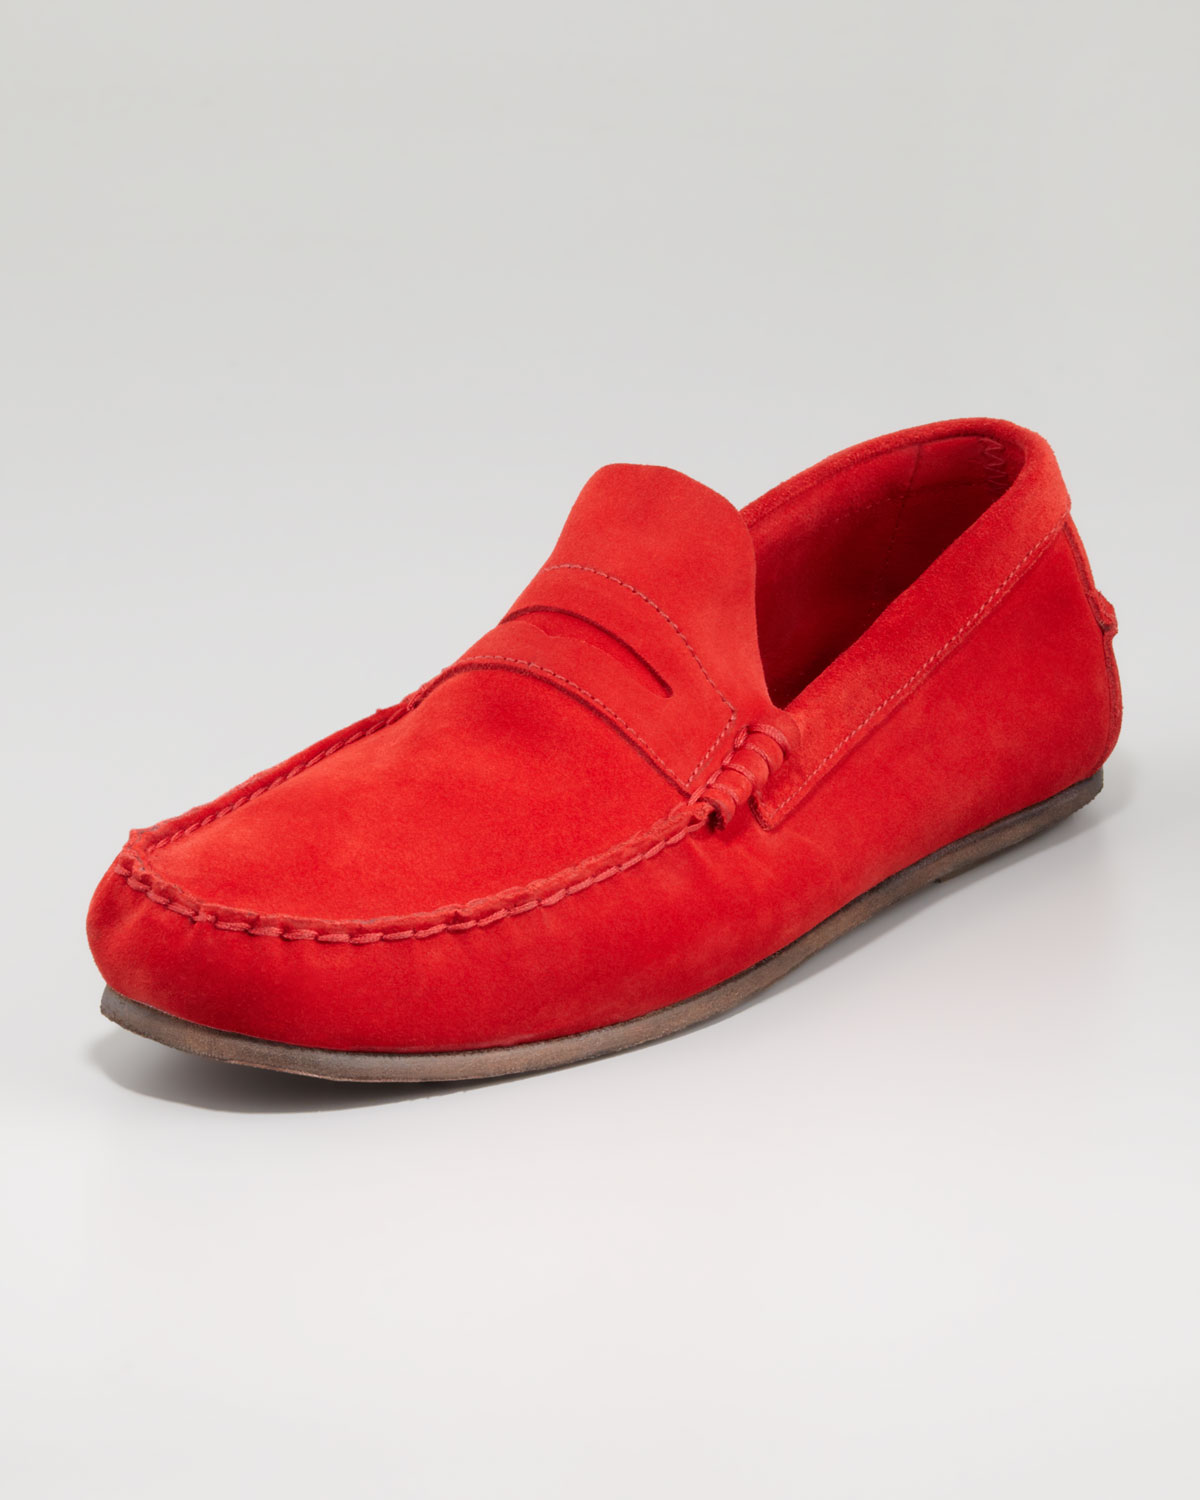 Florsheim By Duckie Brown Suede Penny Loafer Red in Red ...